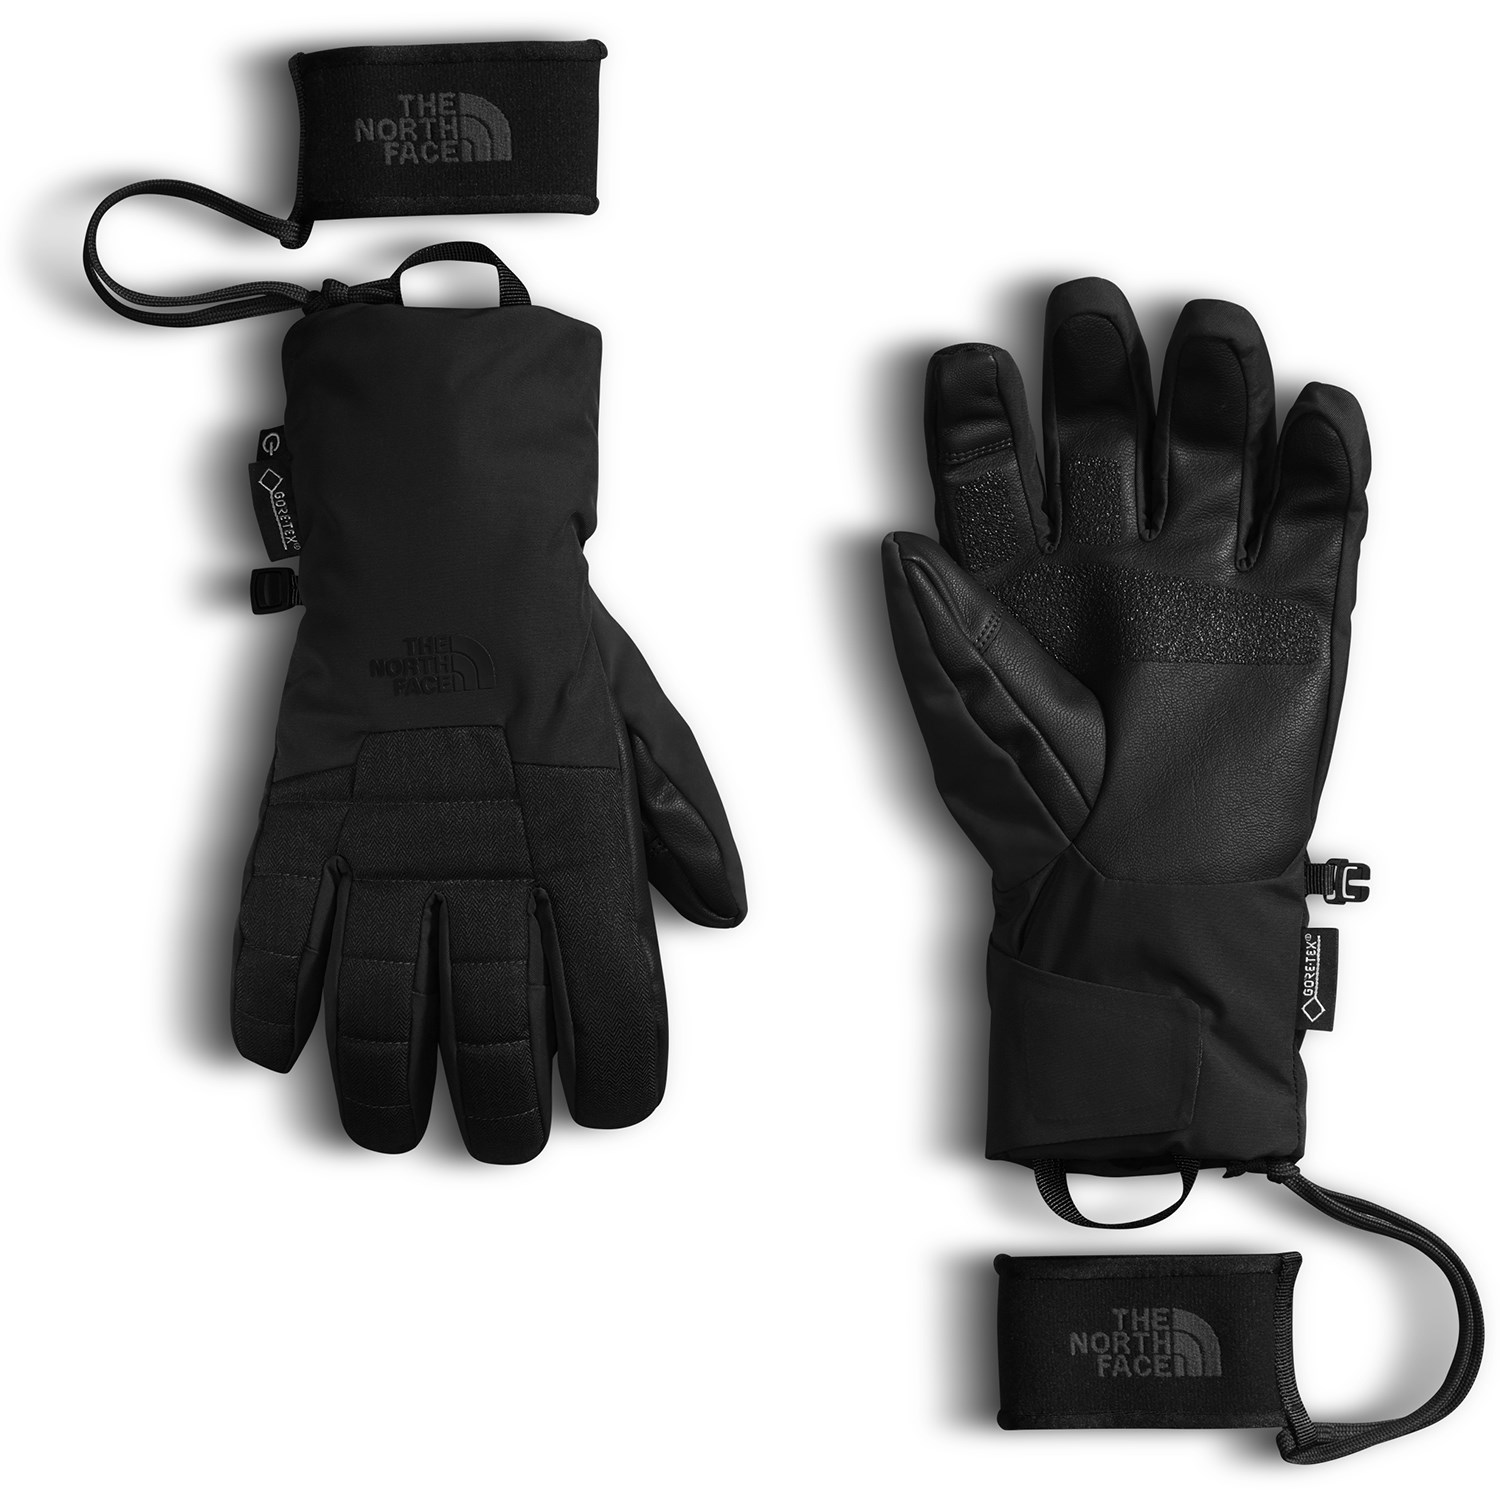 d66fbd749 The North Face Montana GORE-TEX SG Gloves